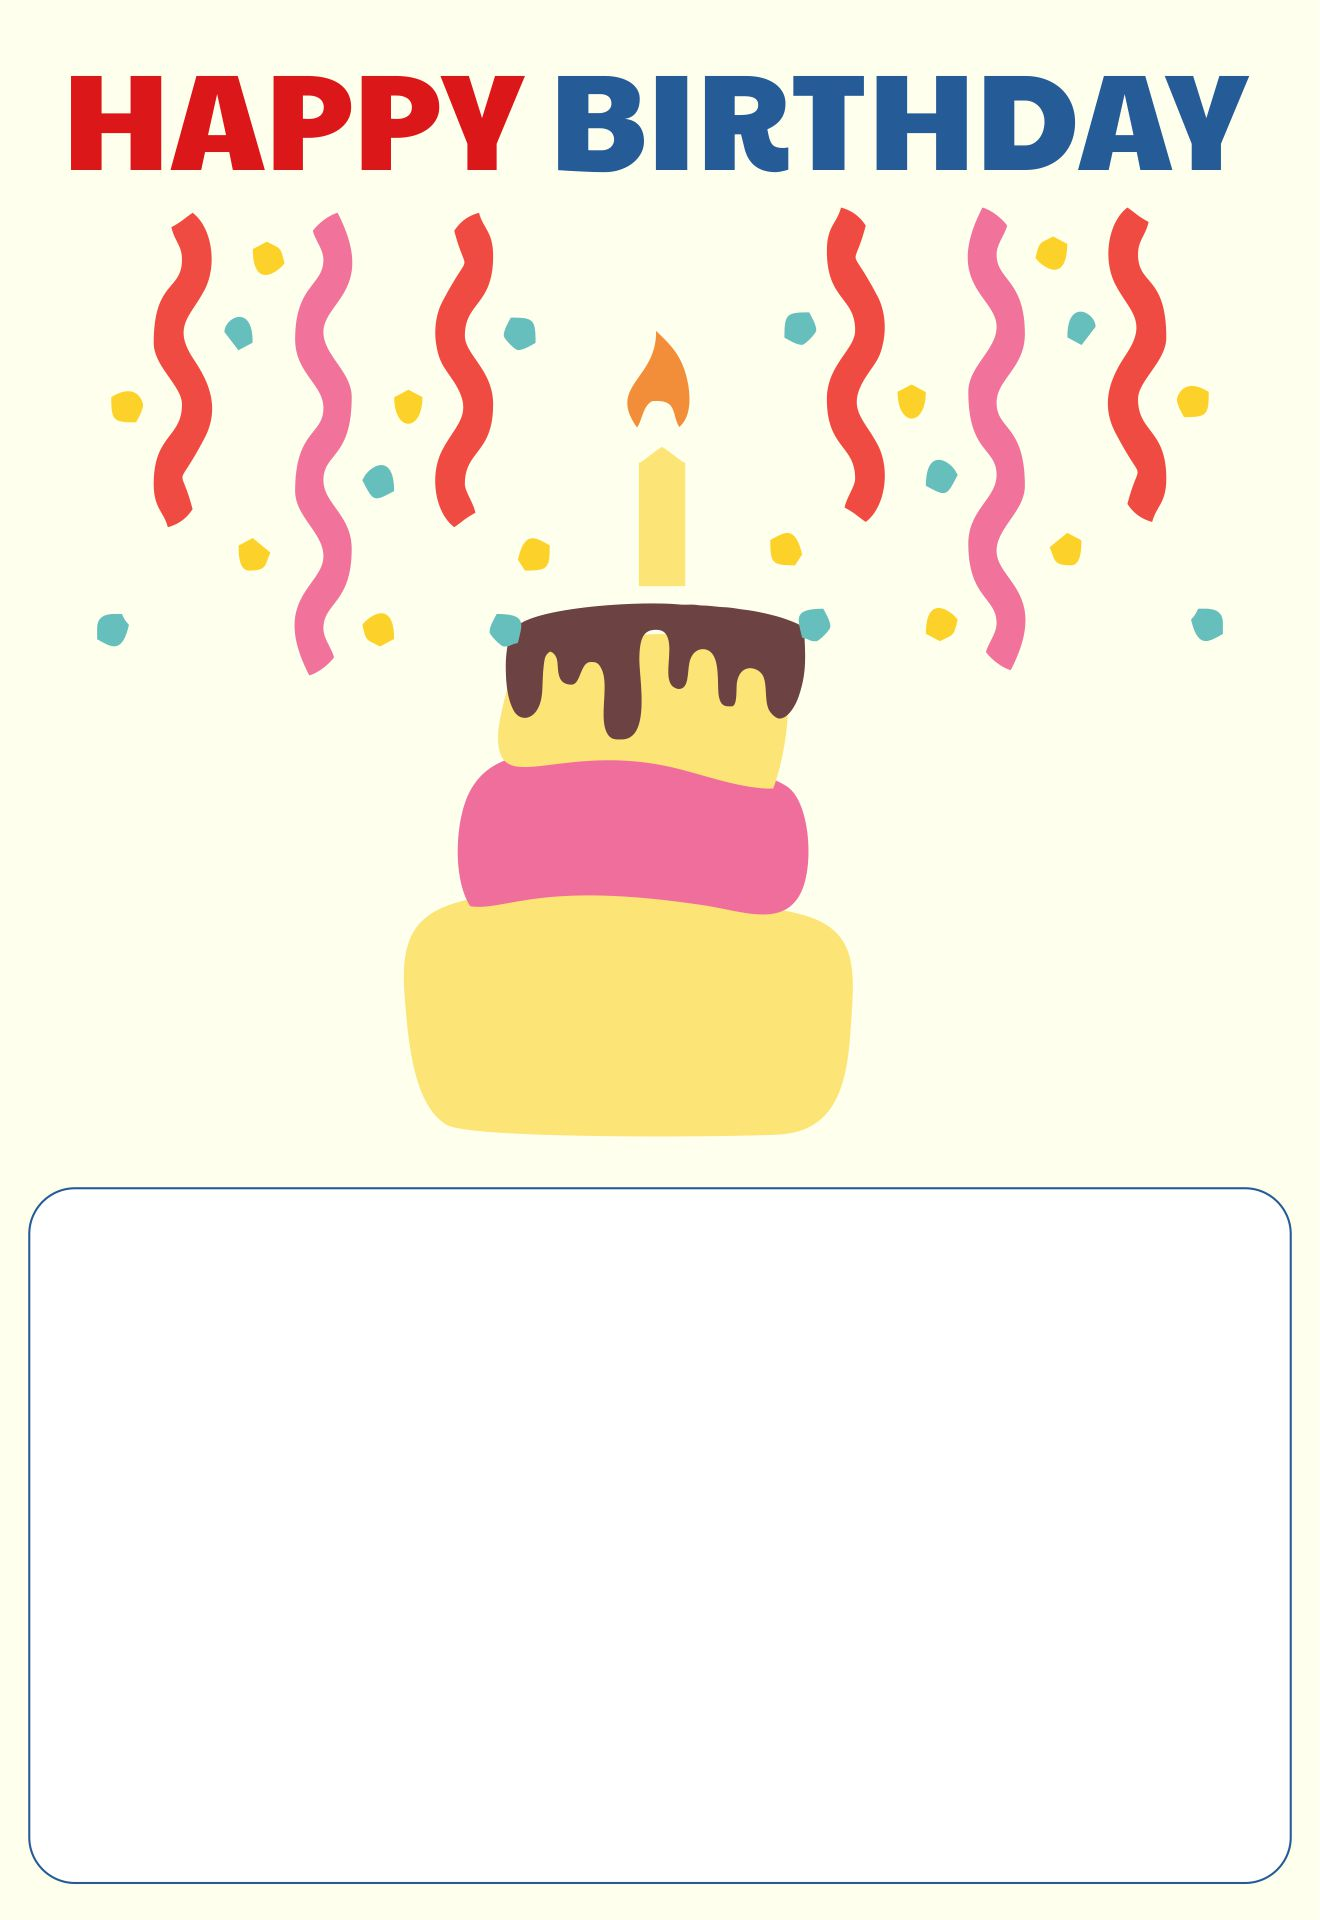 Happy Birthday Wishes Card Template